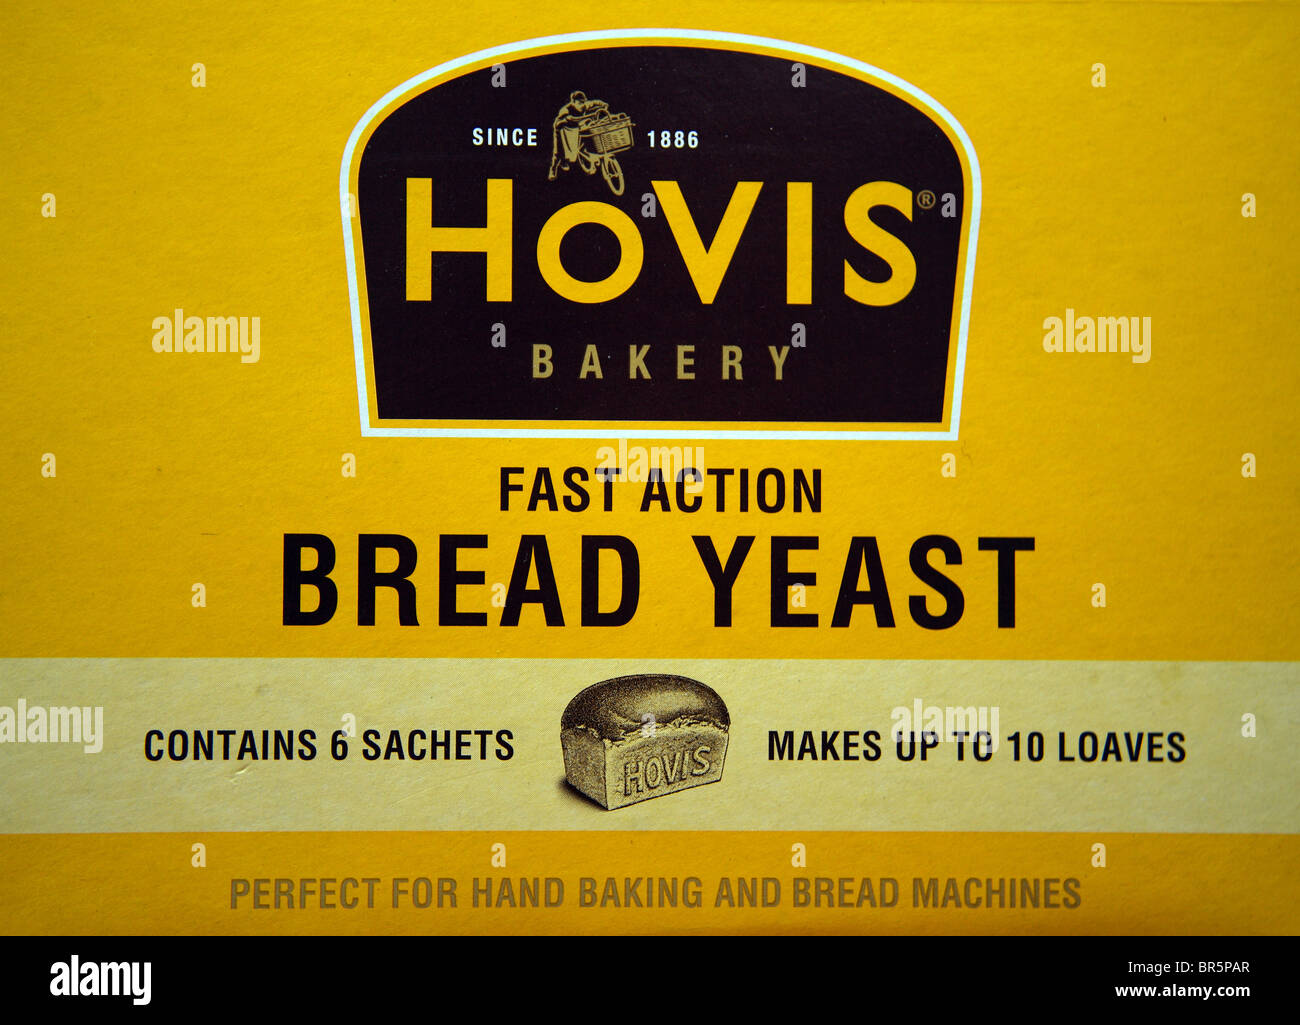 A close up product shot of Hovis bakery fast action bread yeast for hand baking and bread machines. - Stock Image